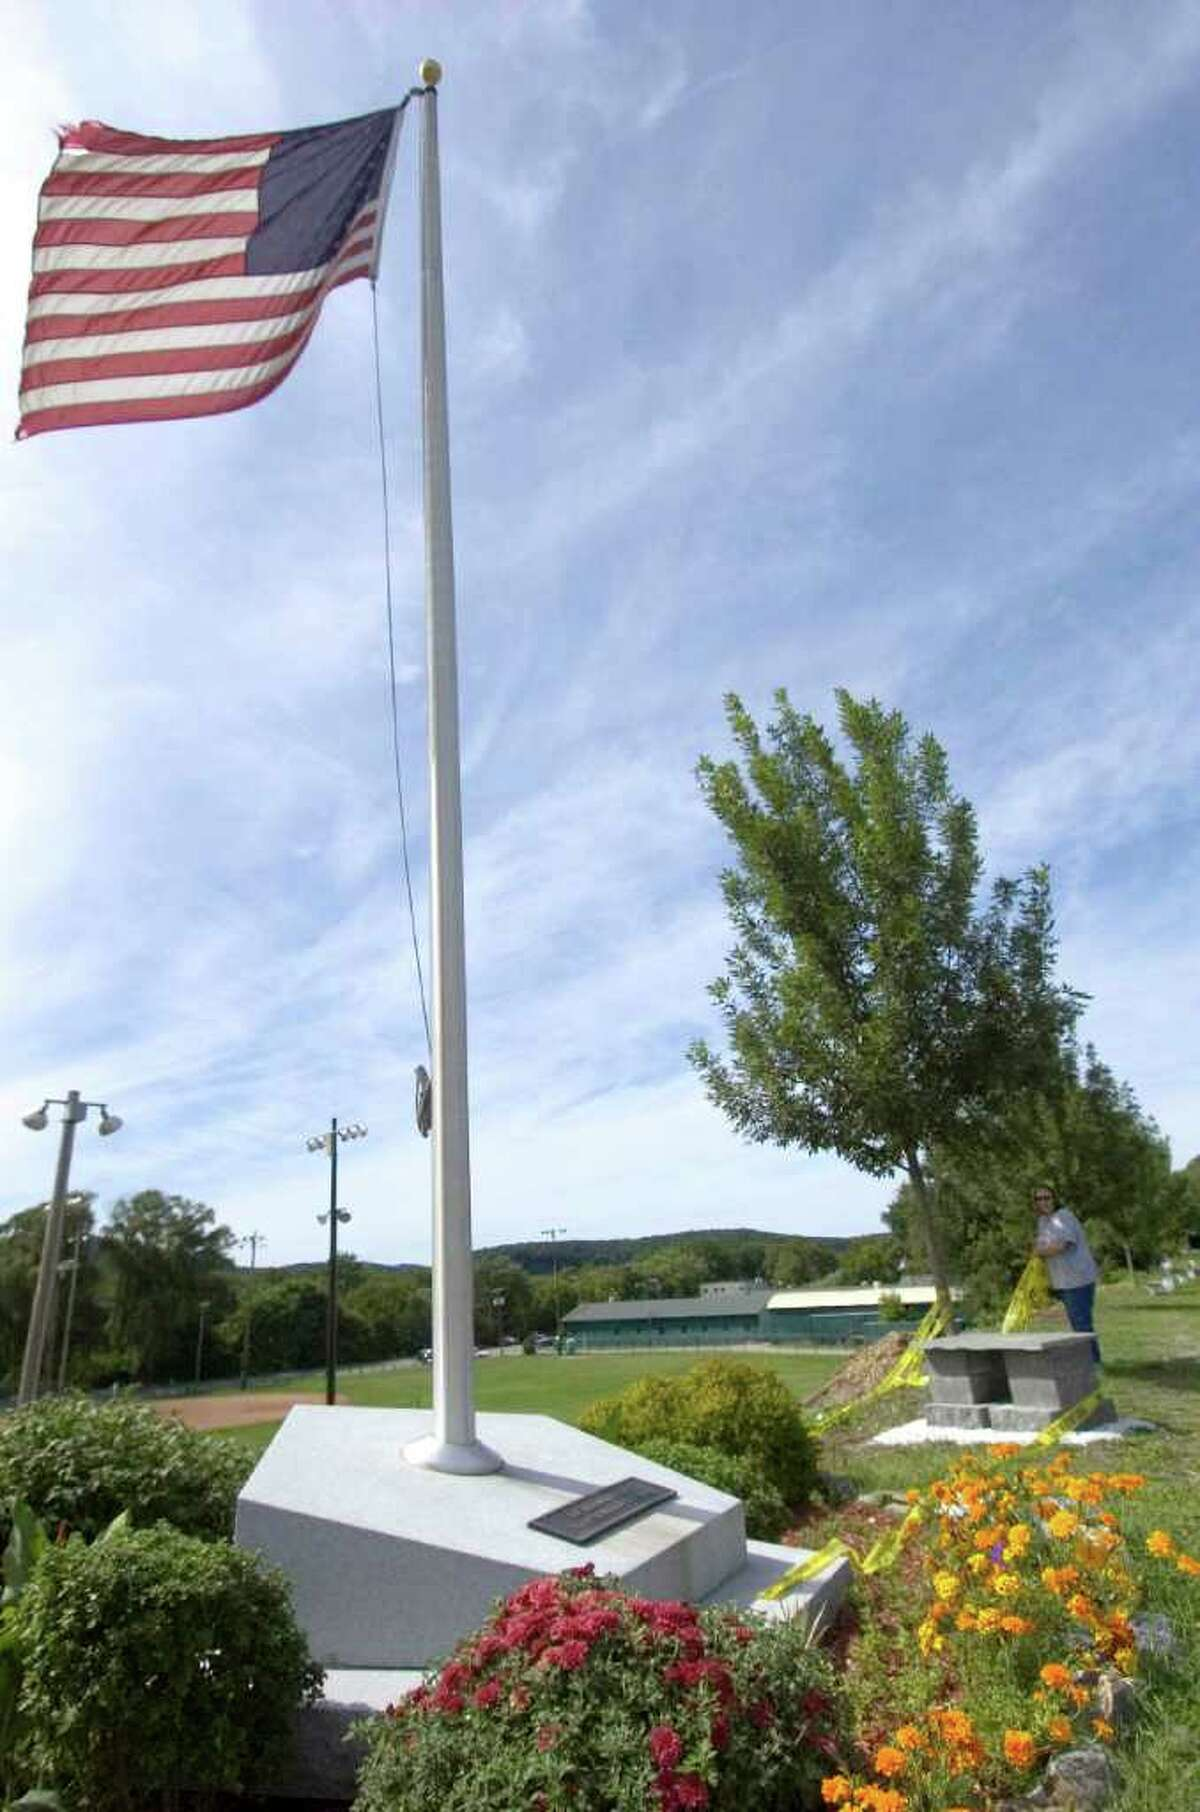 In New Milford, the town's 9/11 Memorial, in the Patriot's Way Parking Plaza, overlooks the baseball fields at Young's Field Park. It is two granite slabs, one a square base and on top a pentagon-shaped stone. In the center is a hole for a flagpole and on either side of the monument are spotlights that illuminate the flag at night and represent the two World Trade Center towers.